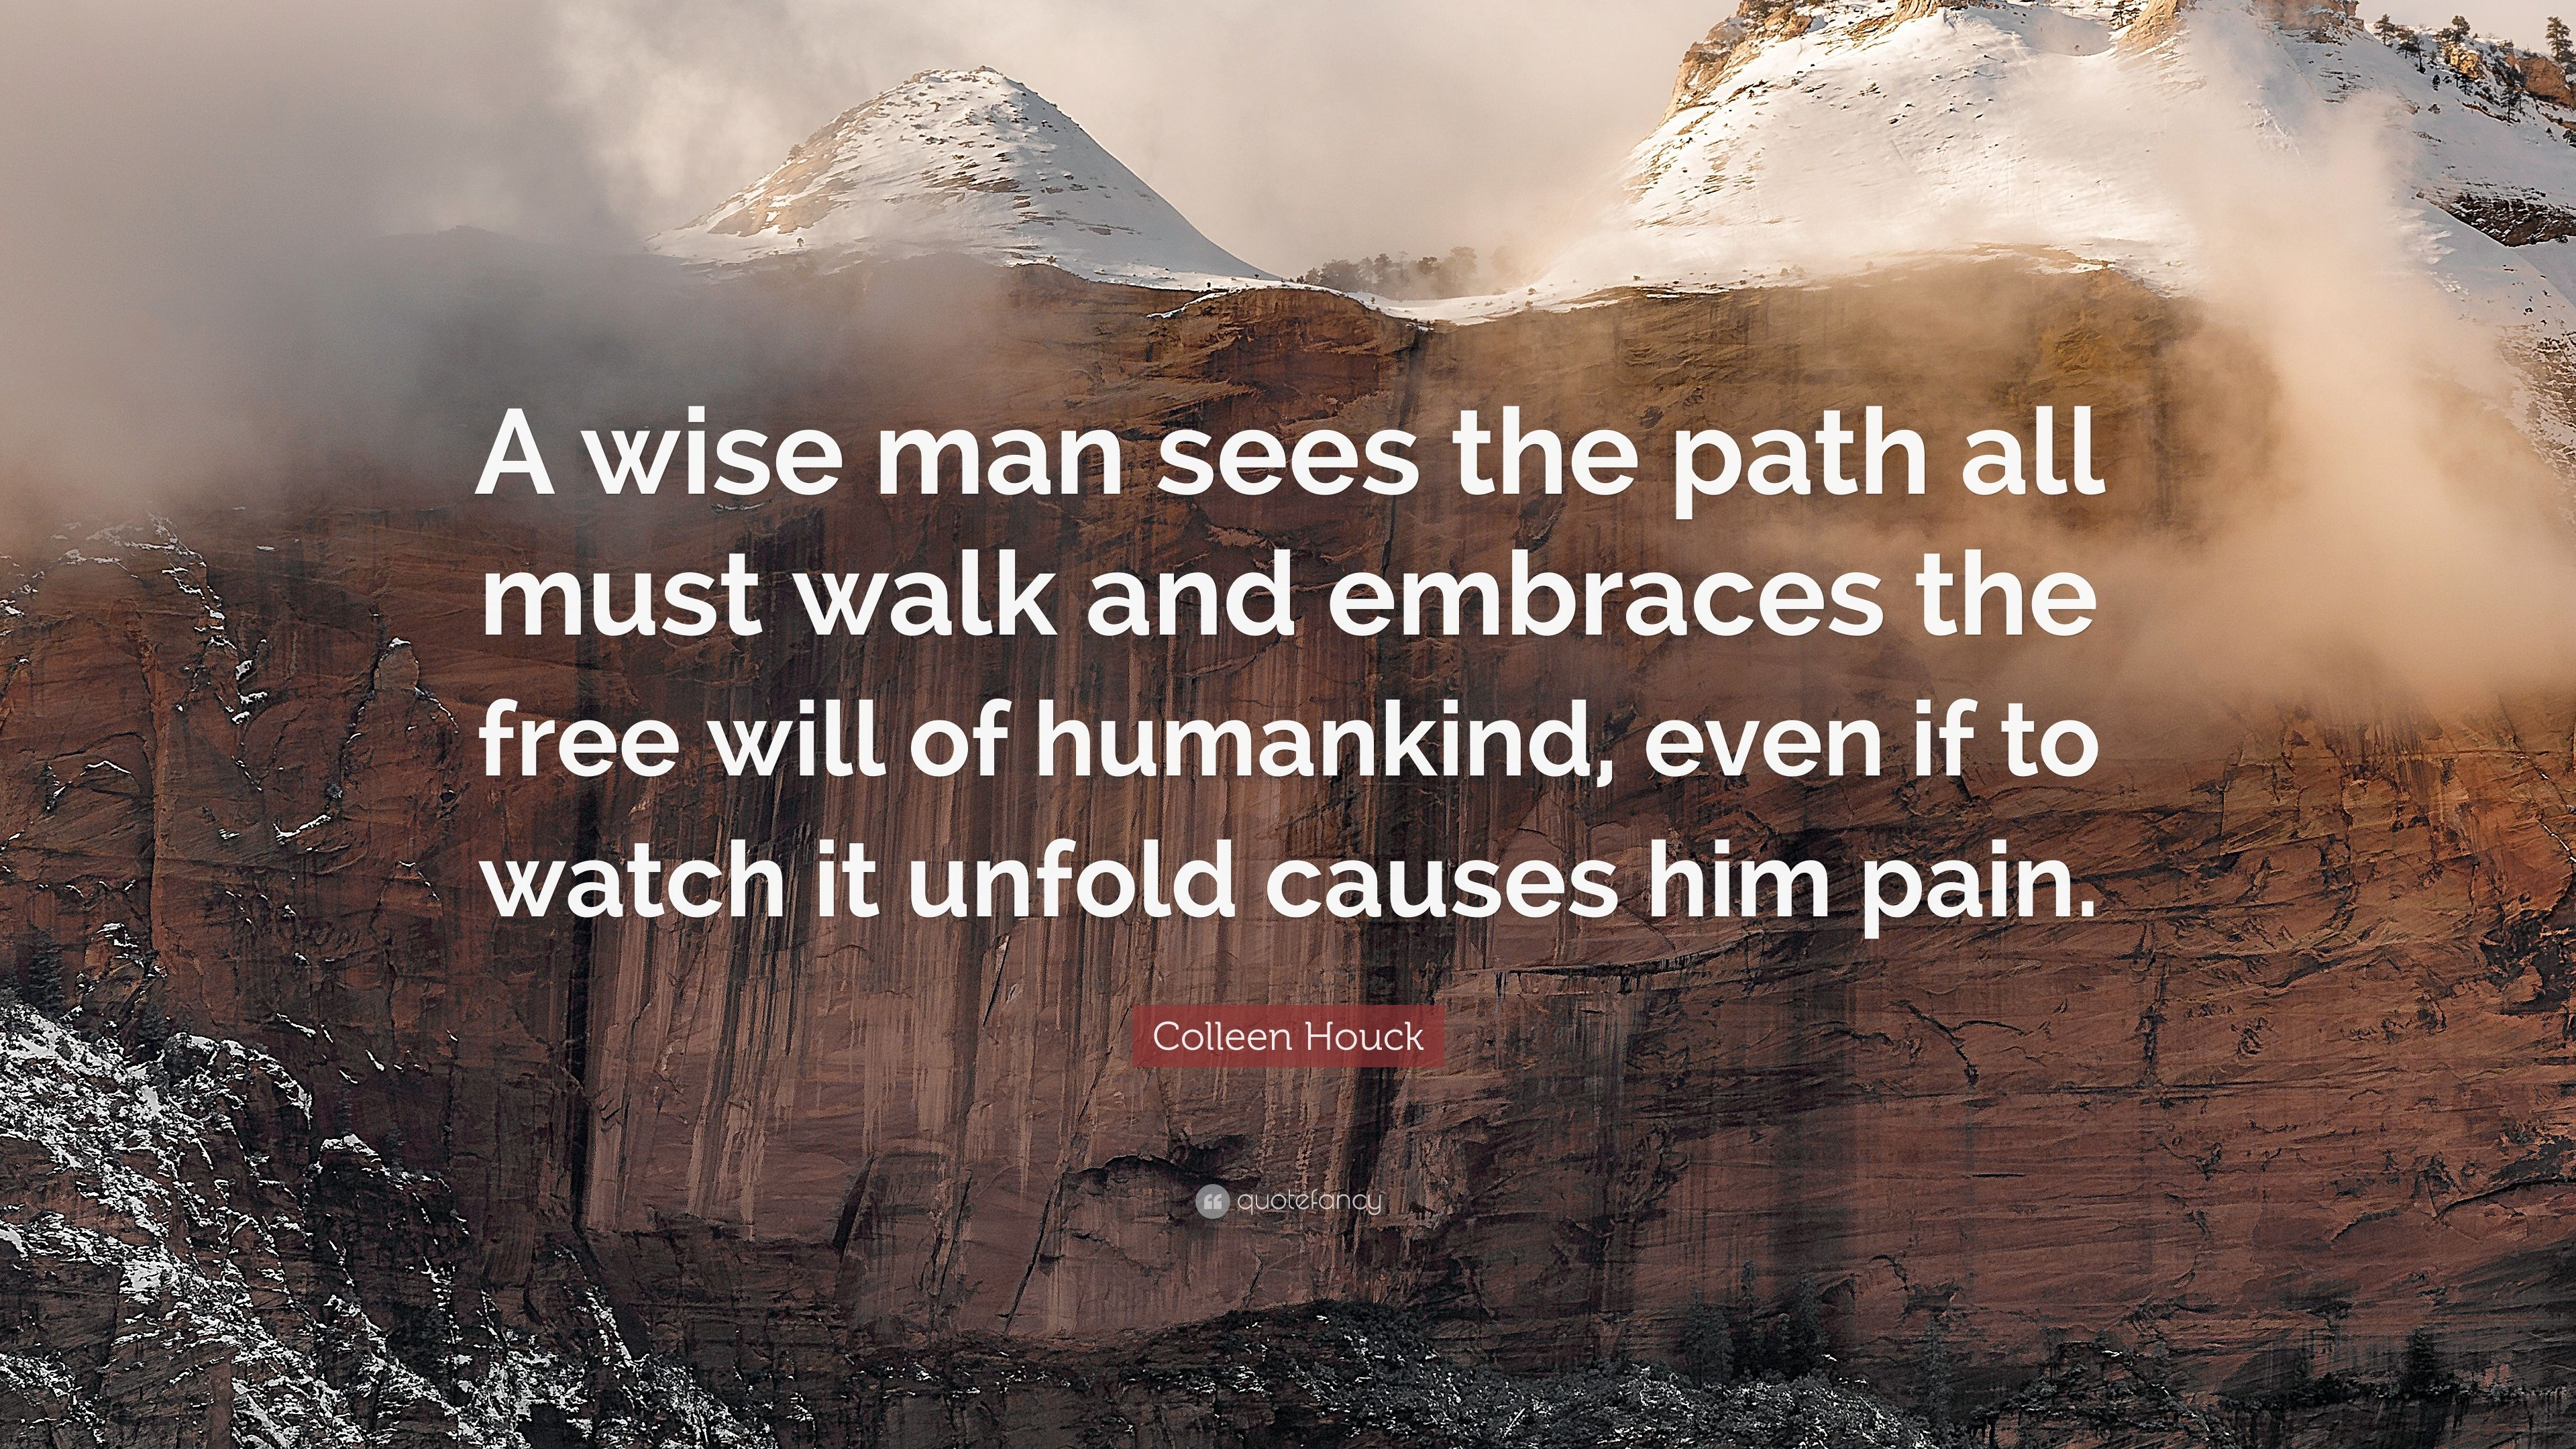 Charmant Colleen Houck Quote: U201cA Wise Man Sees The Path All Must Walk And Embraces